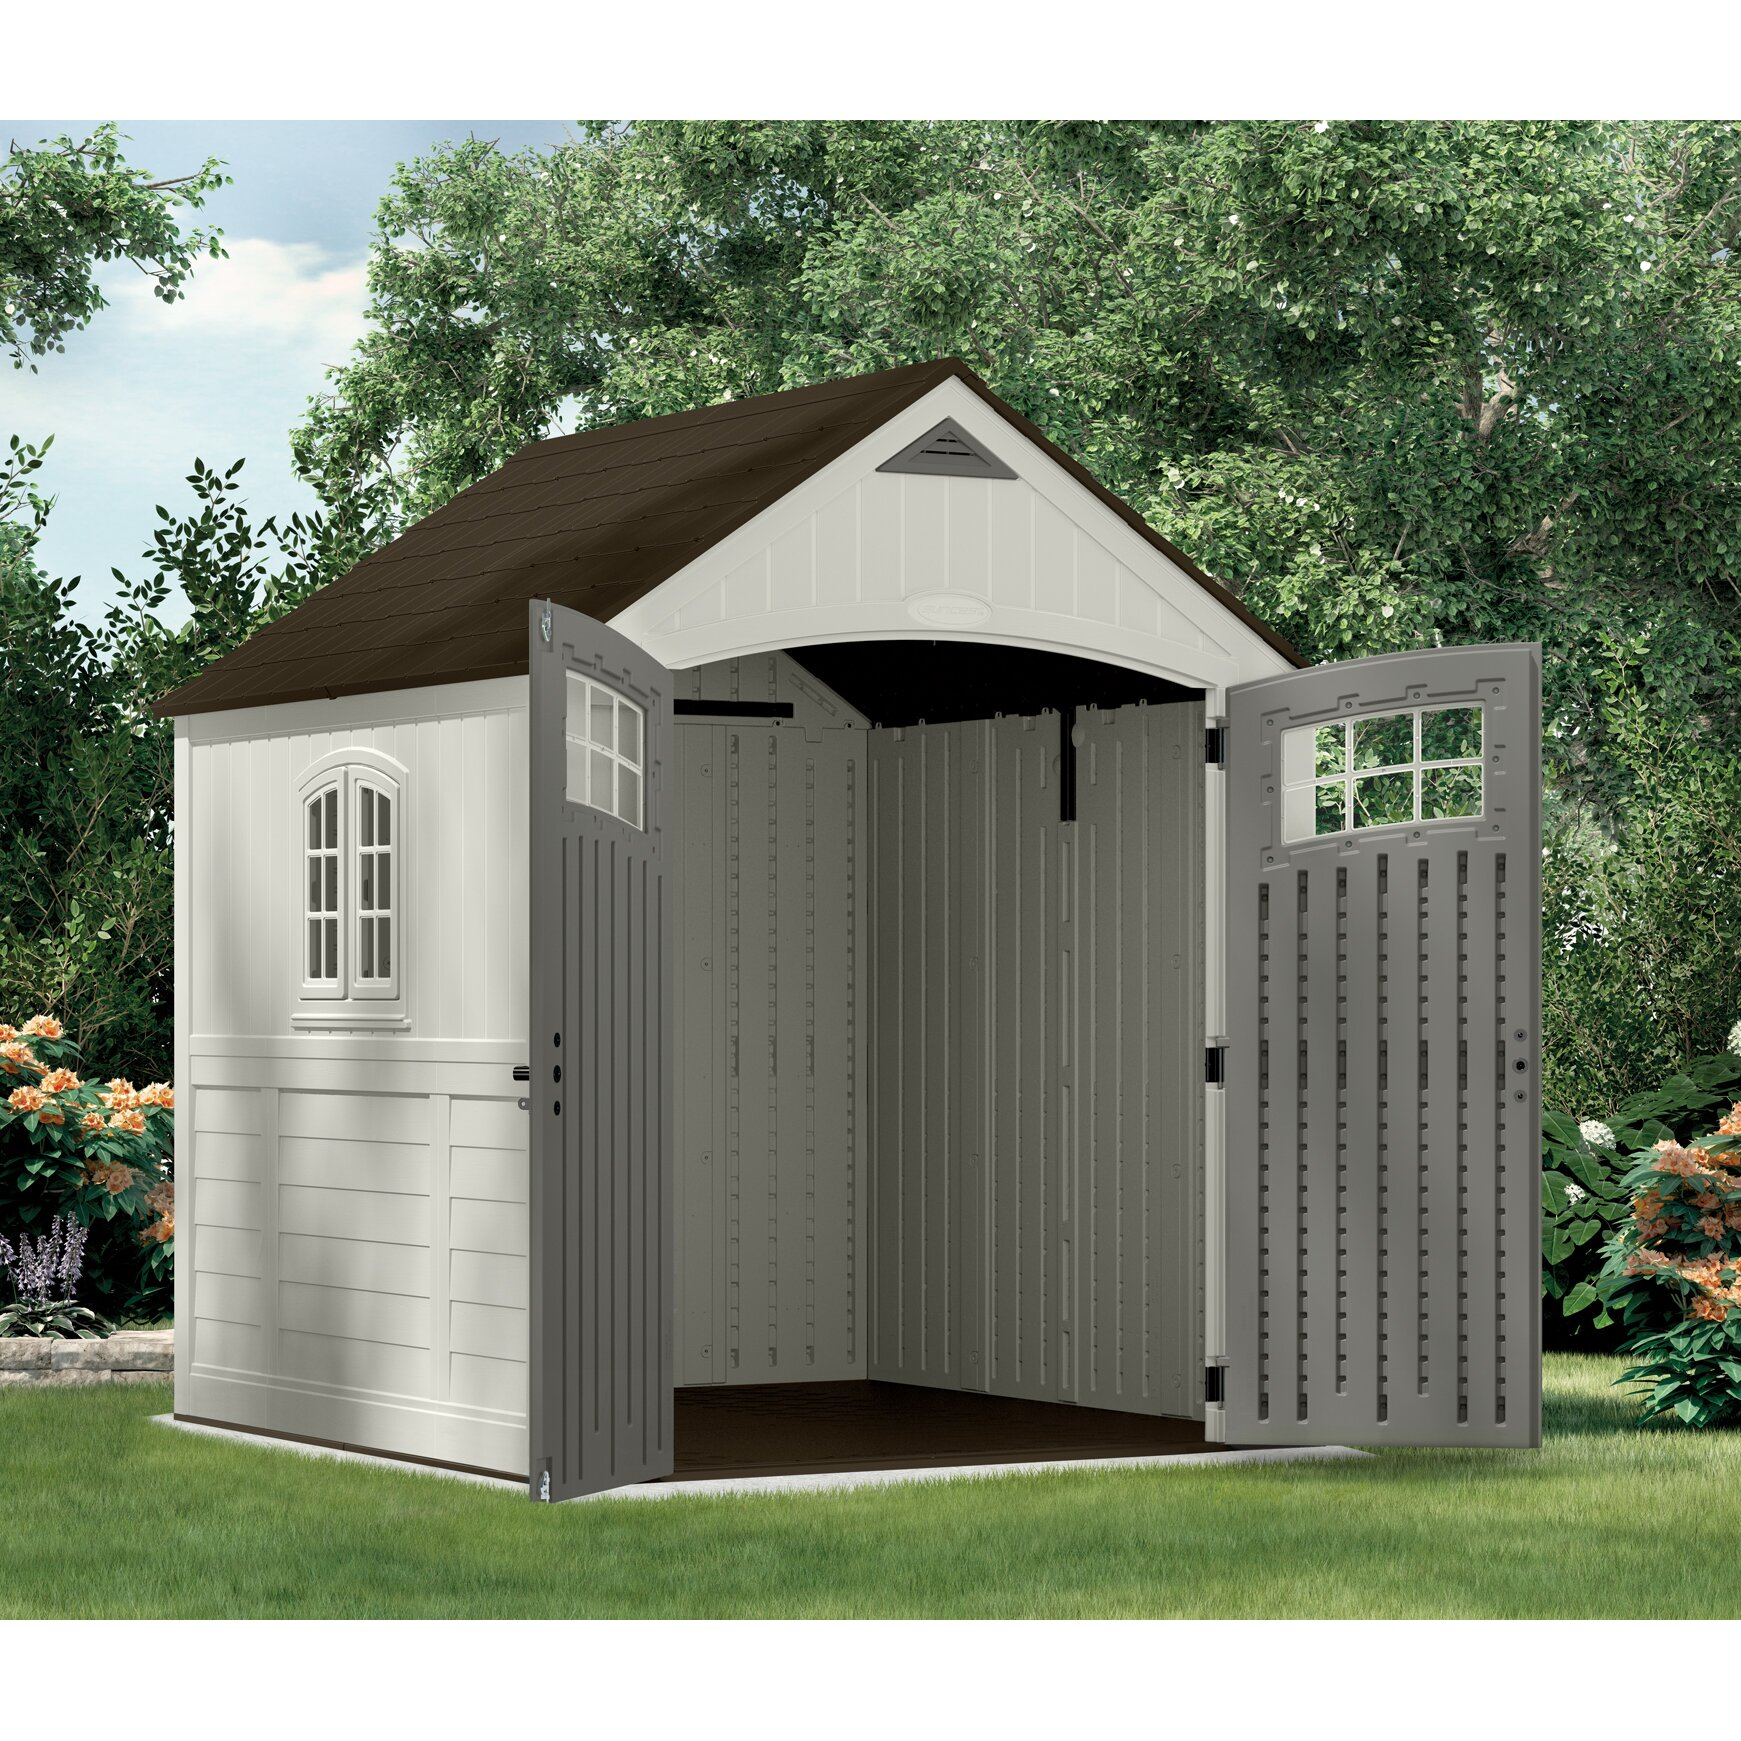 Suncast cascade 7 ft w x 7 ft d resin storage shed for Resin garden shed